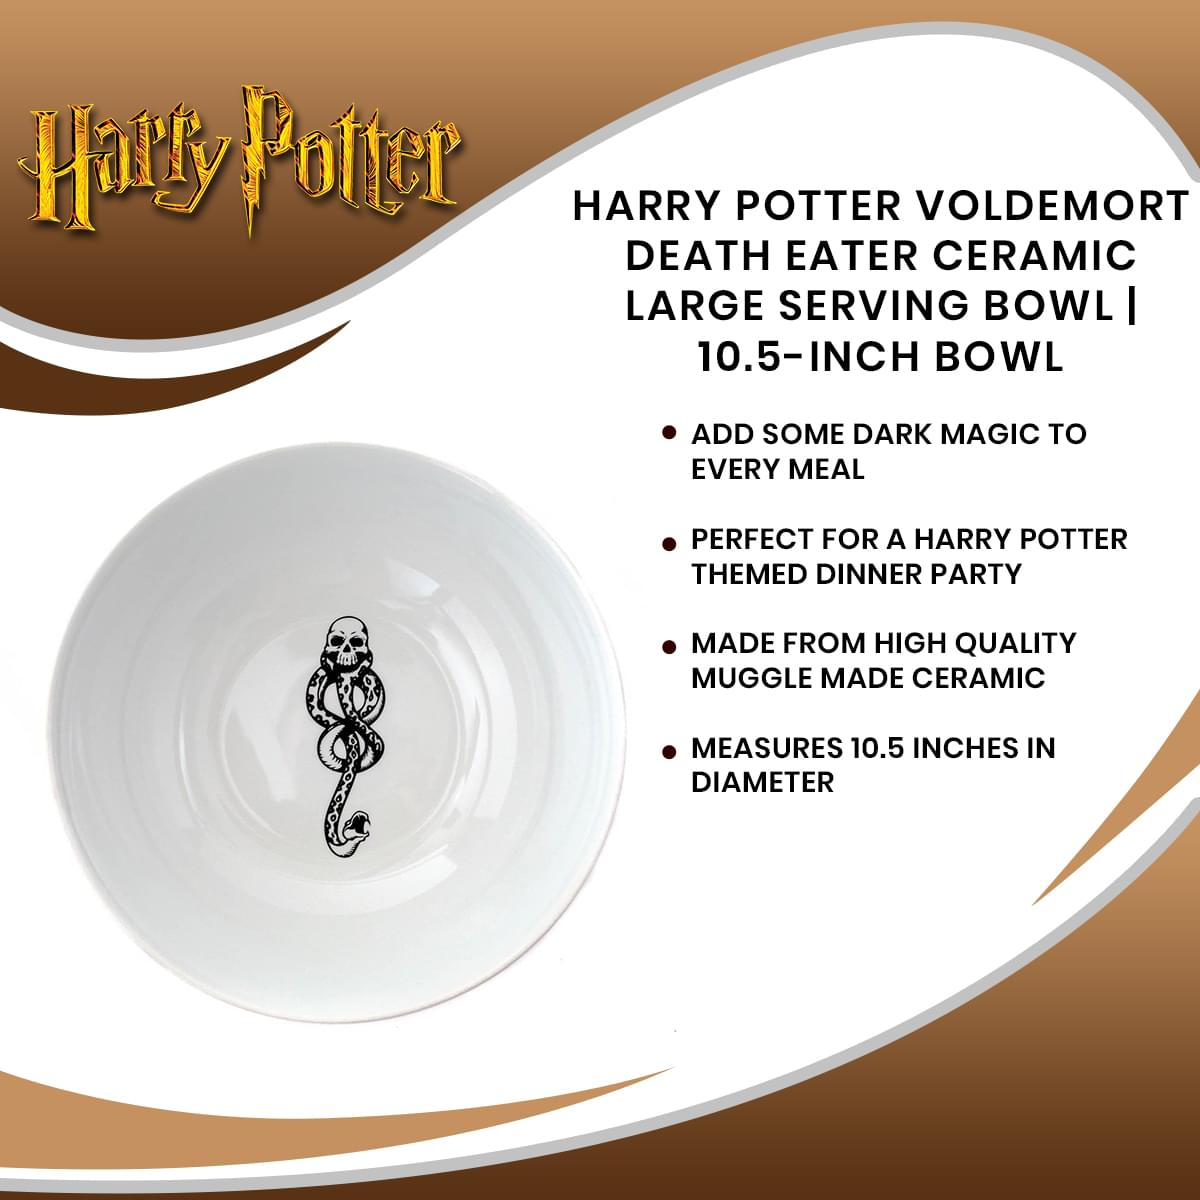 Harry Potter Voldemort Death Eater Ceramic Large Serving Bowl | 10.5-Inch Bowl